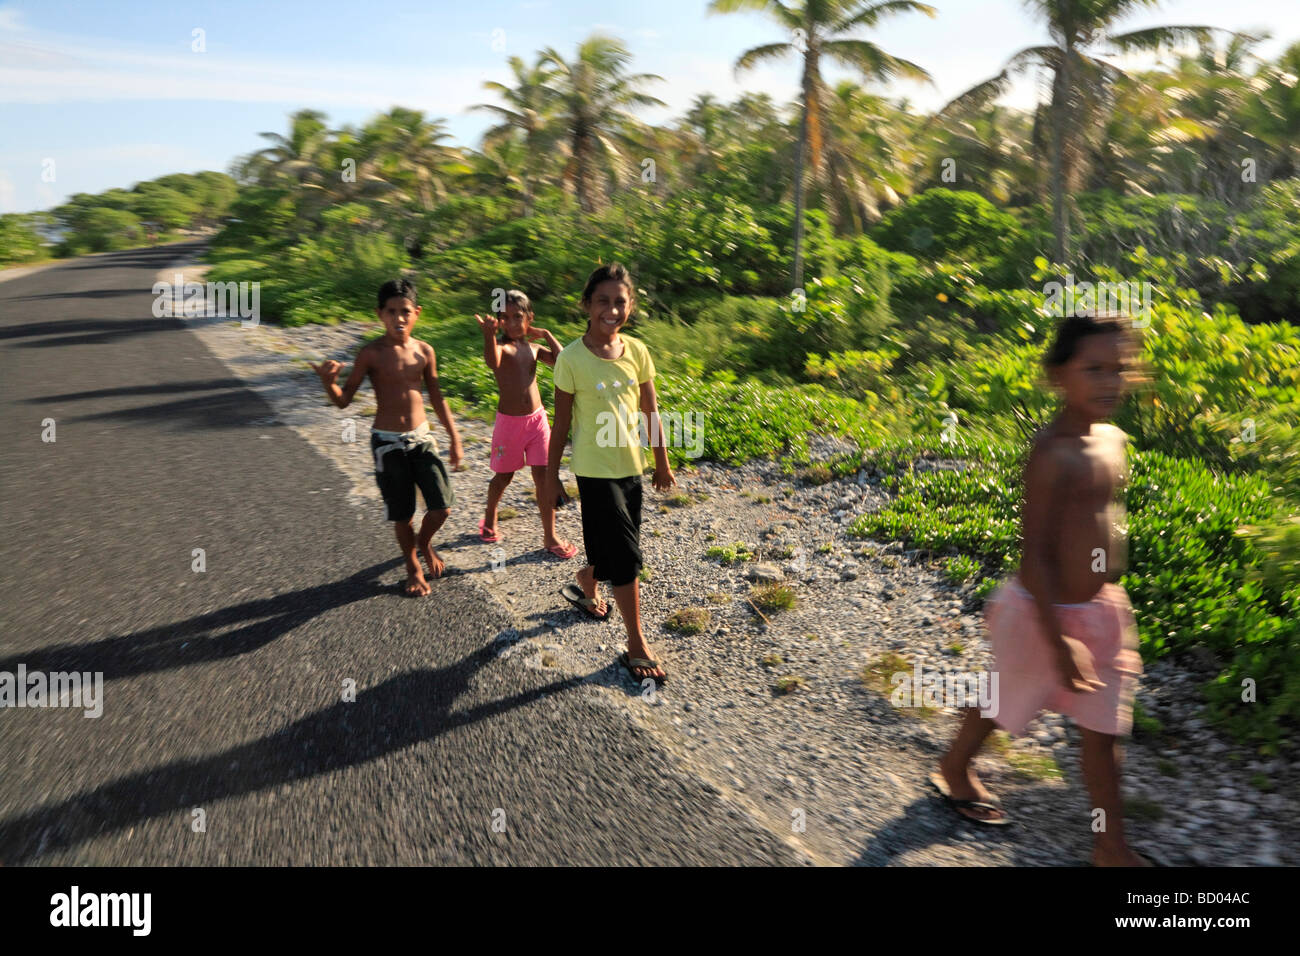 Childrens of Rangiroa, Tuamotu Archipelago, French Polynesia - Stock Image